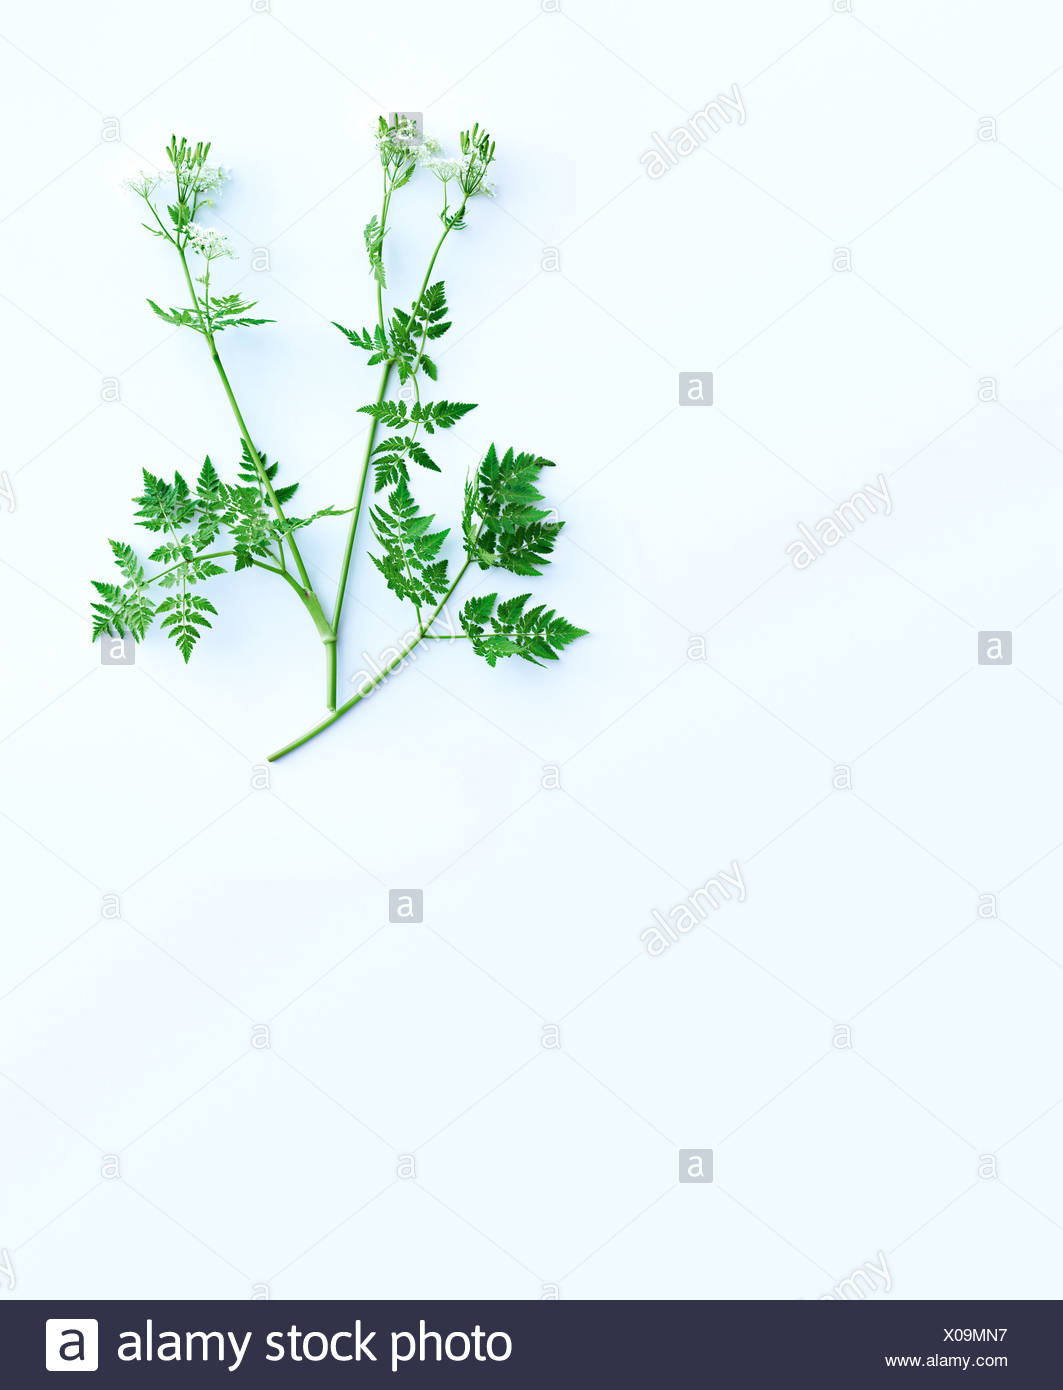 Herb stems and leaves - Stock Image